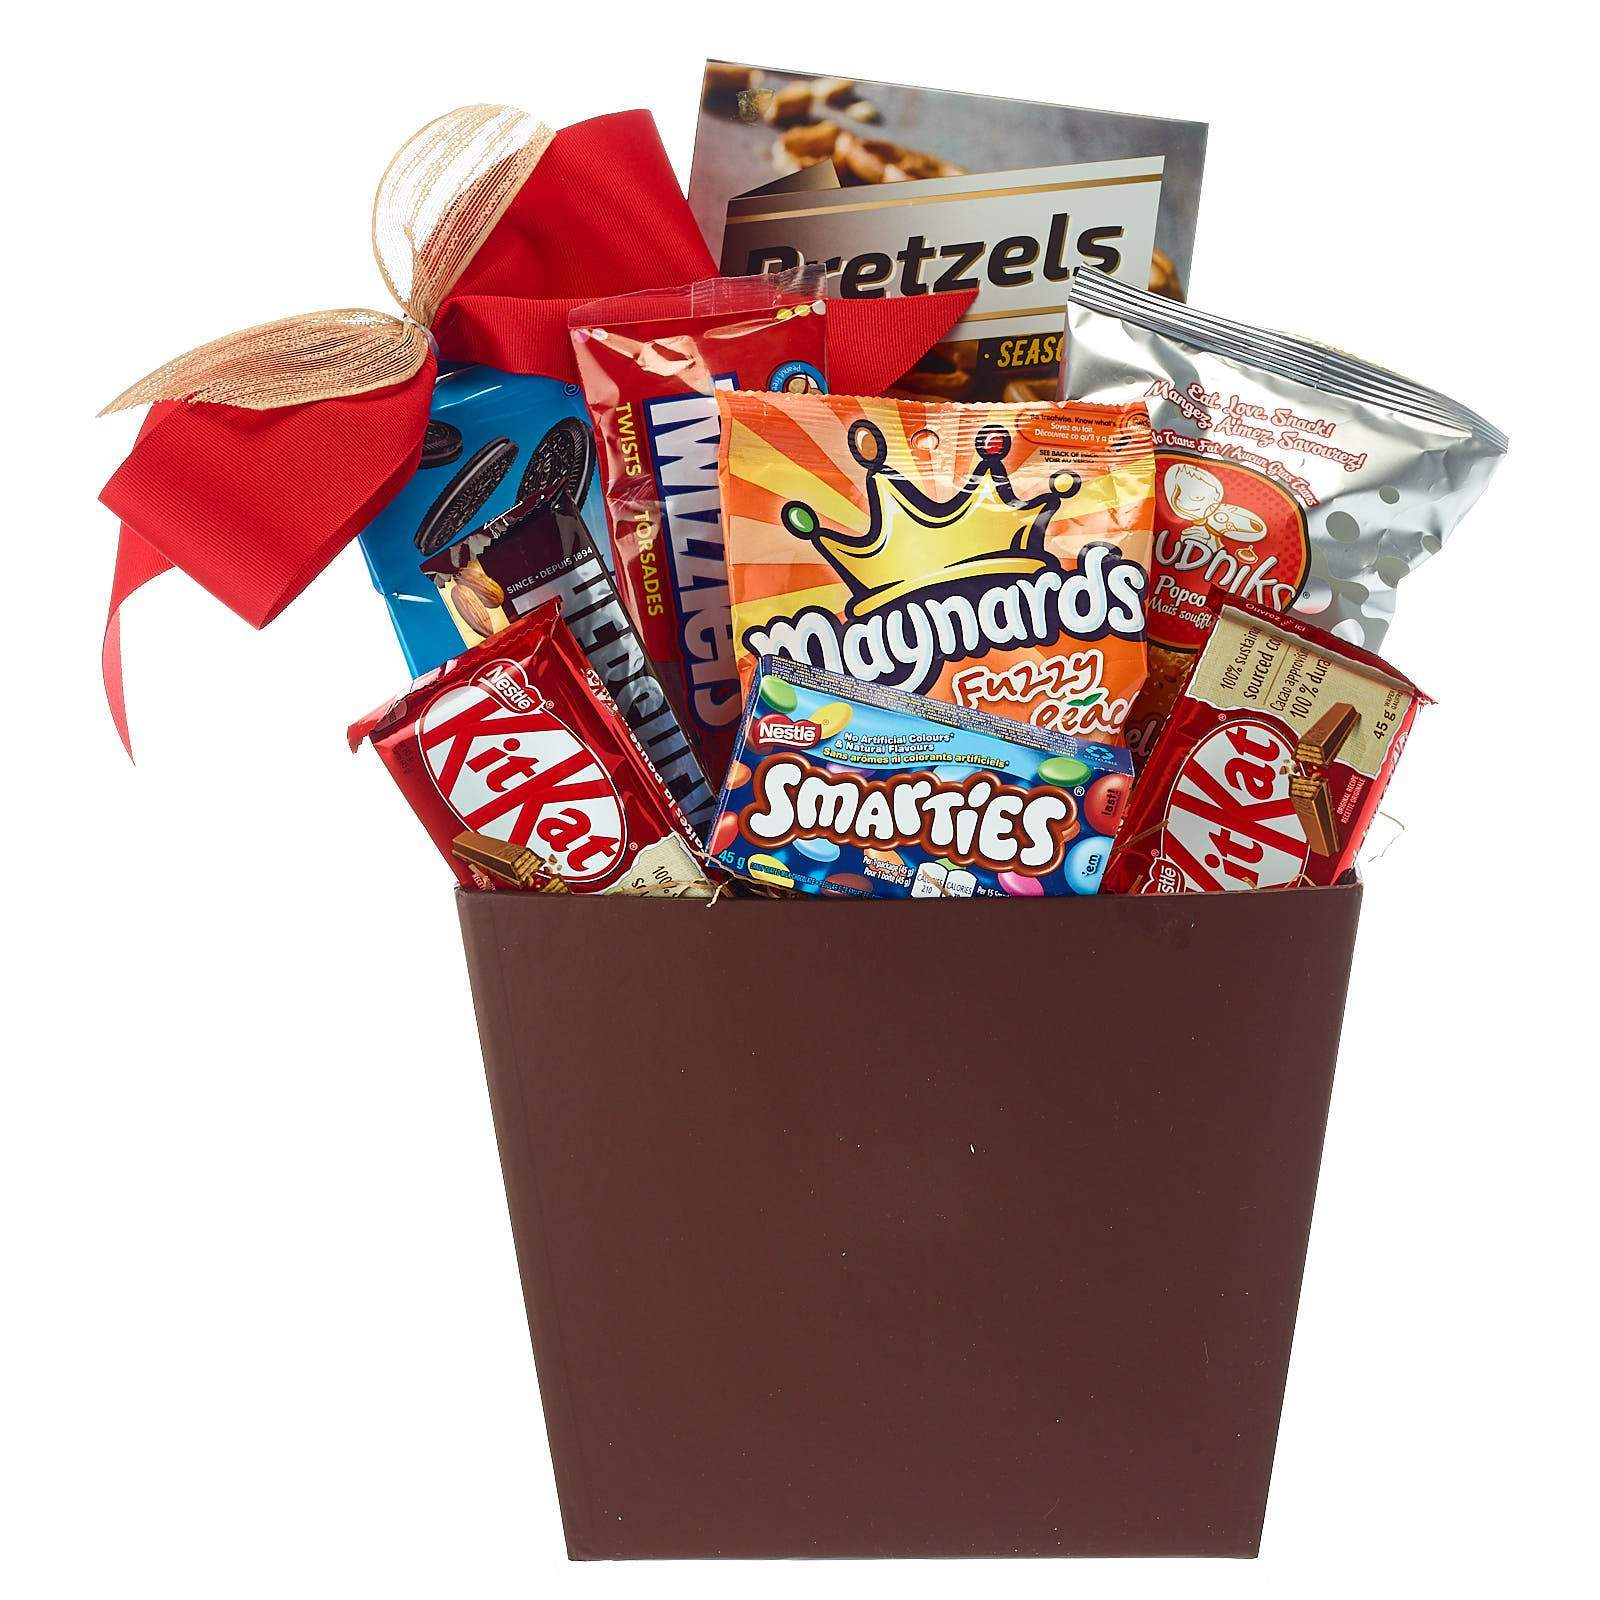 Candy and chocolate gift basket